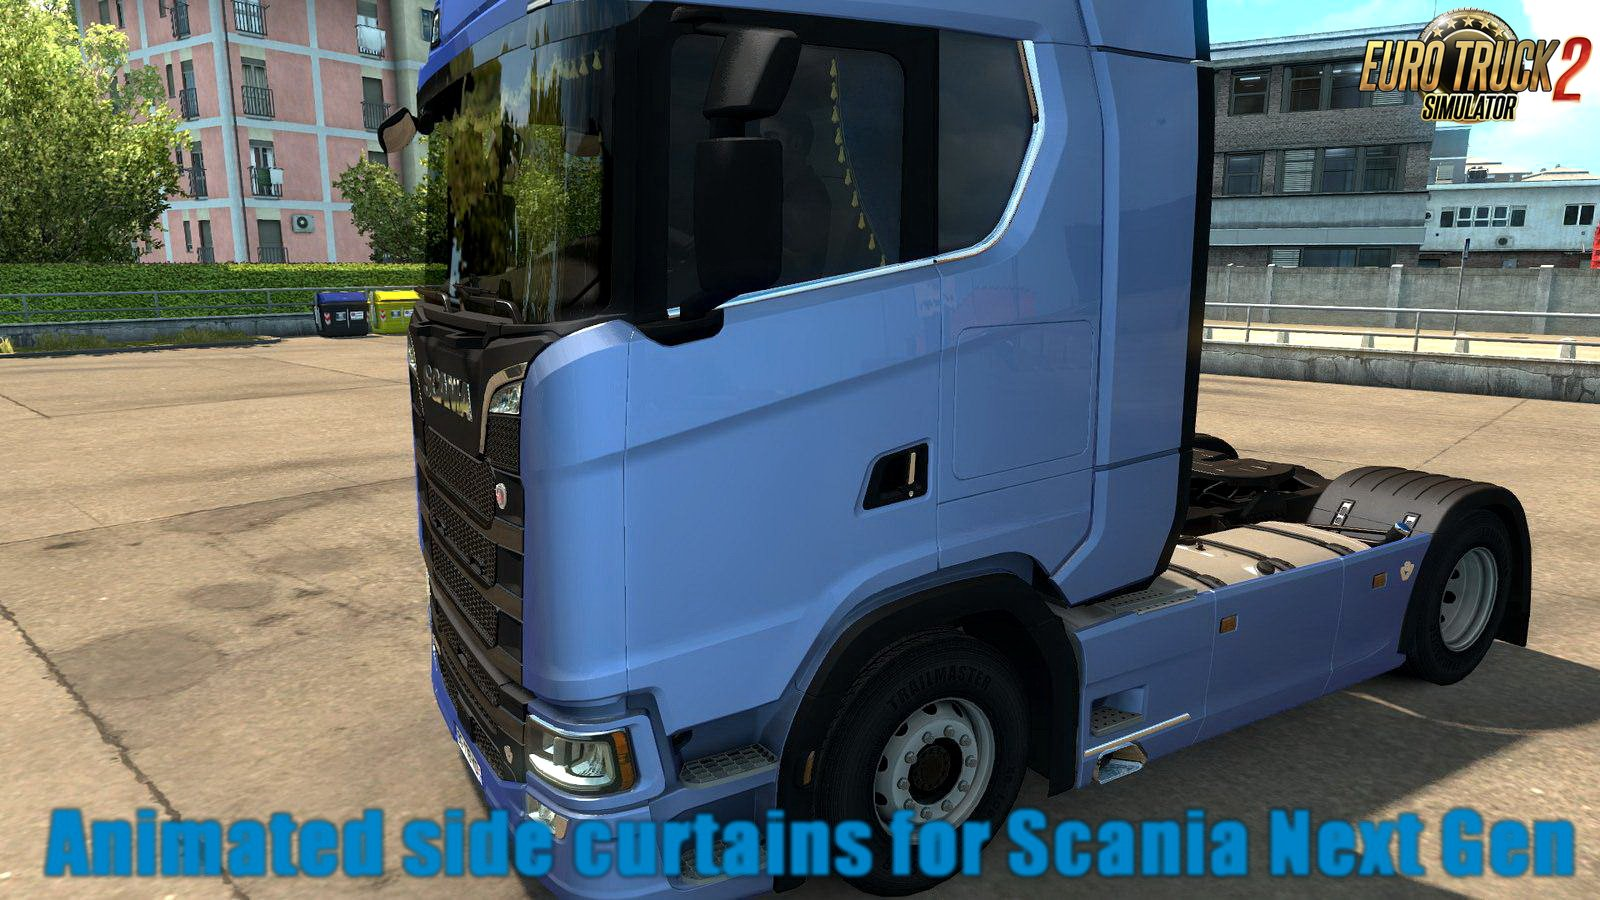 Animated side curtains for Scania Next Gen v1.0 (1.30.x)